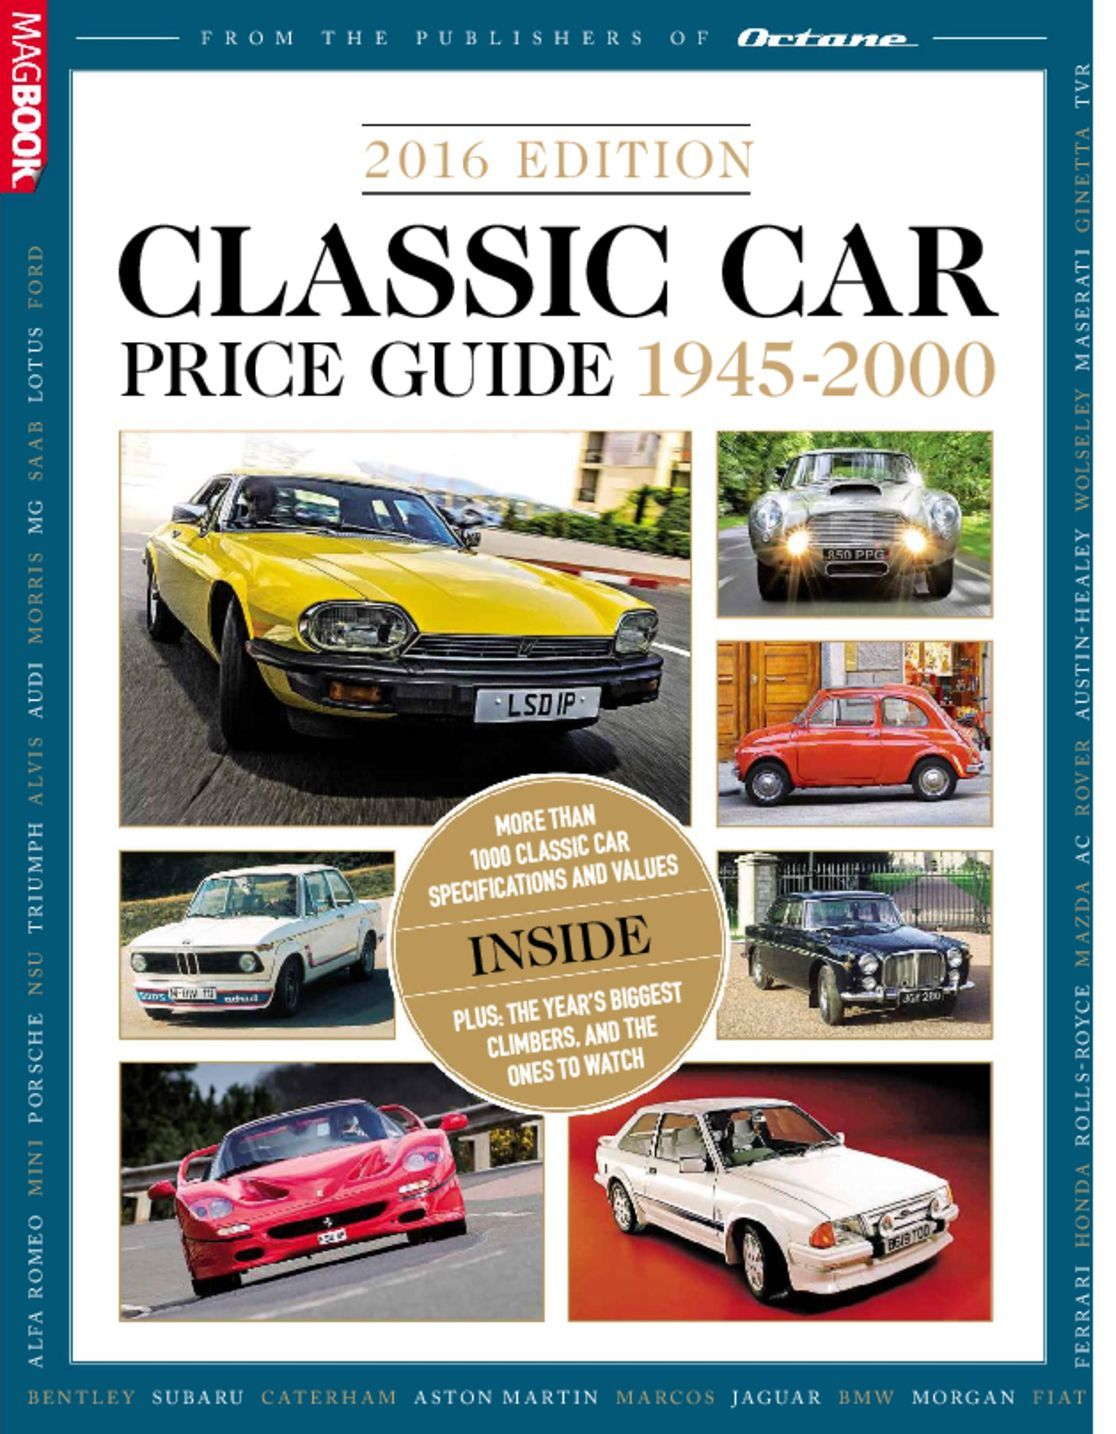 Classic Car Price Guide Magazine (Digital) - DiscountMags.com